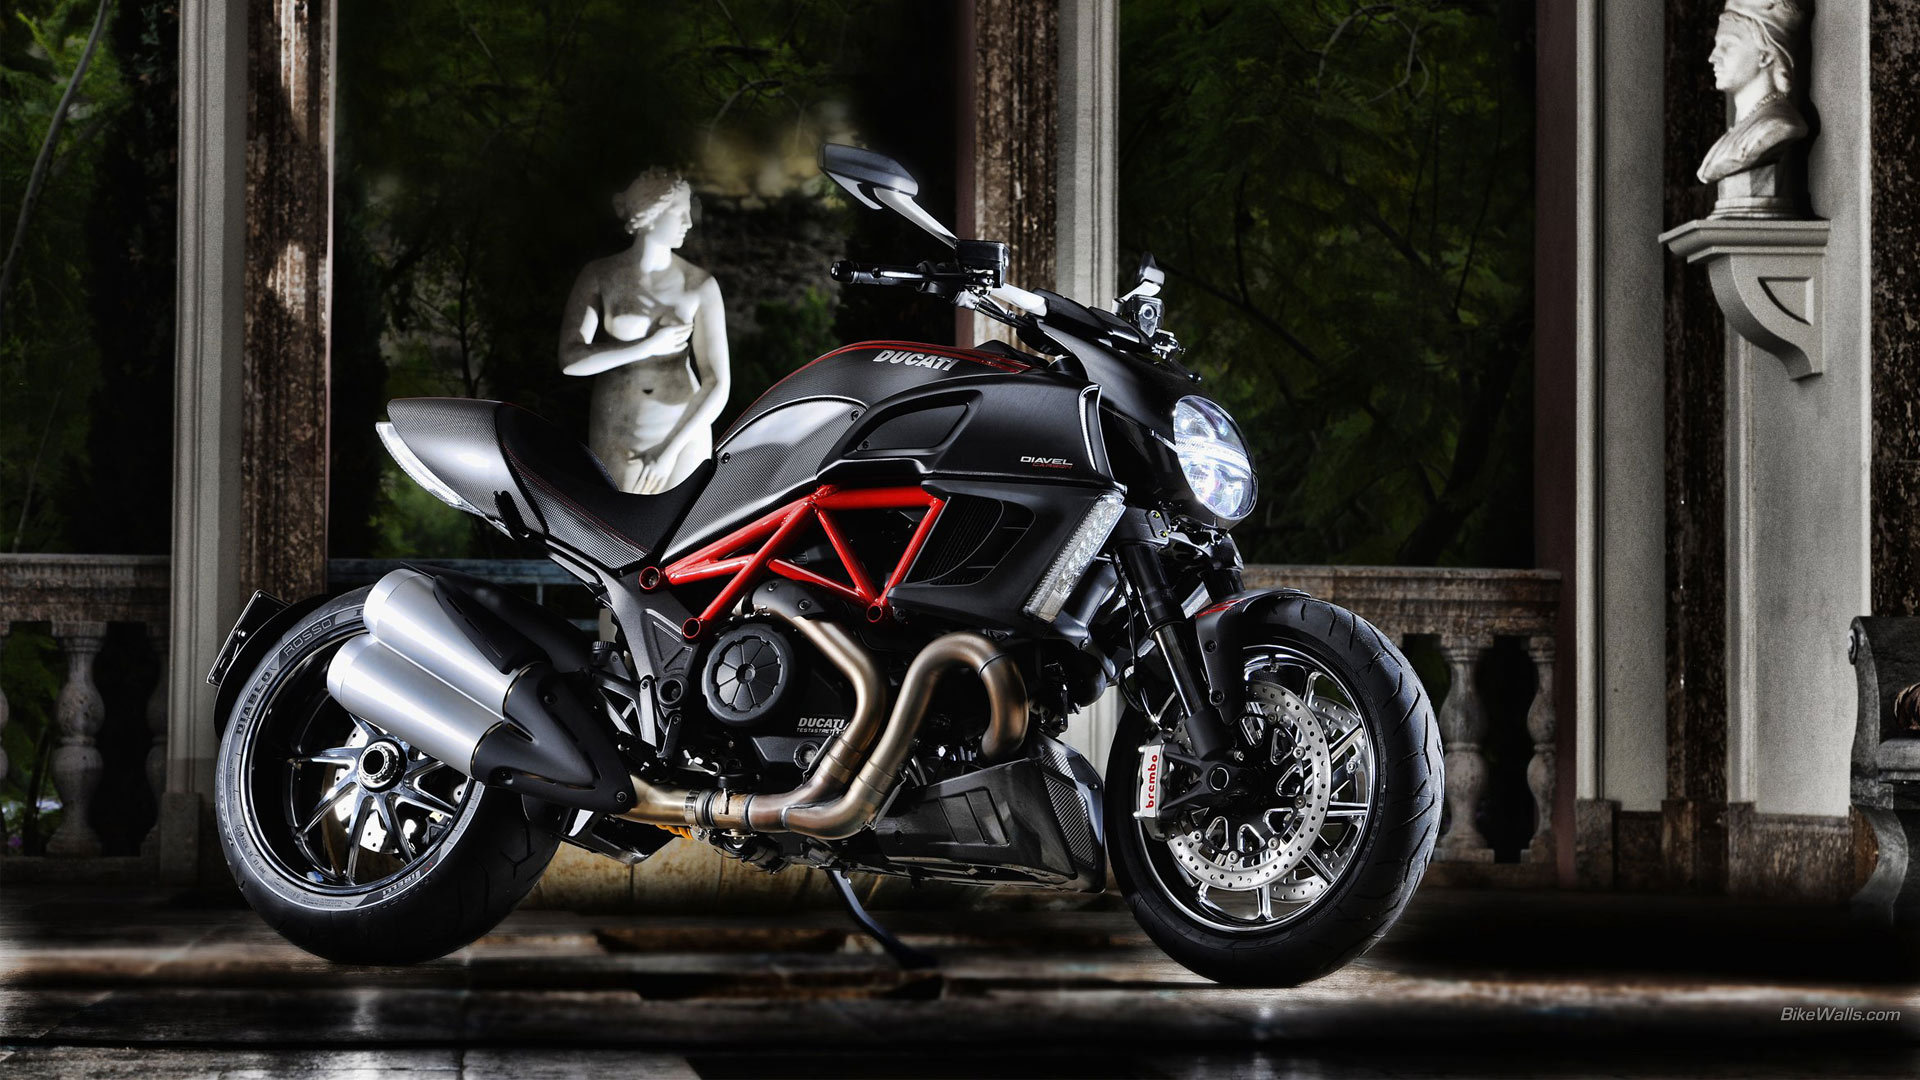 Ducati Diavel Wallpapers Images Photos Pictures Backgrounds